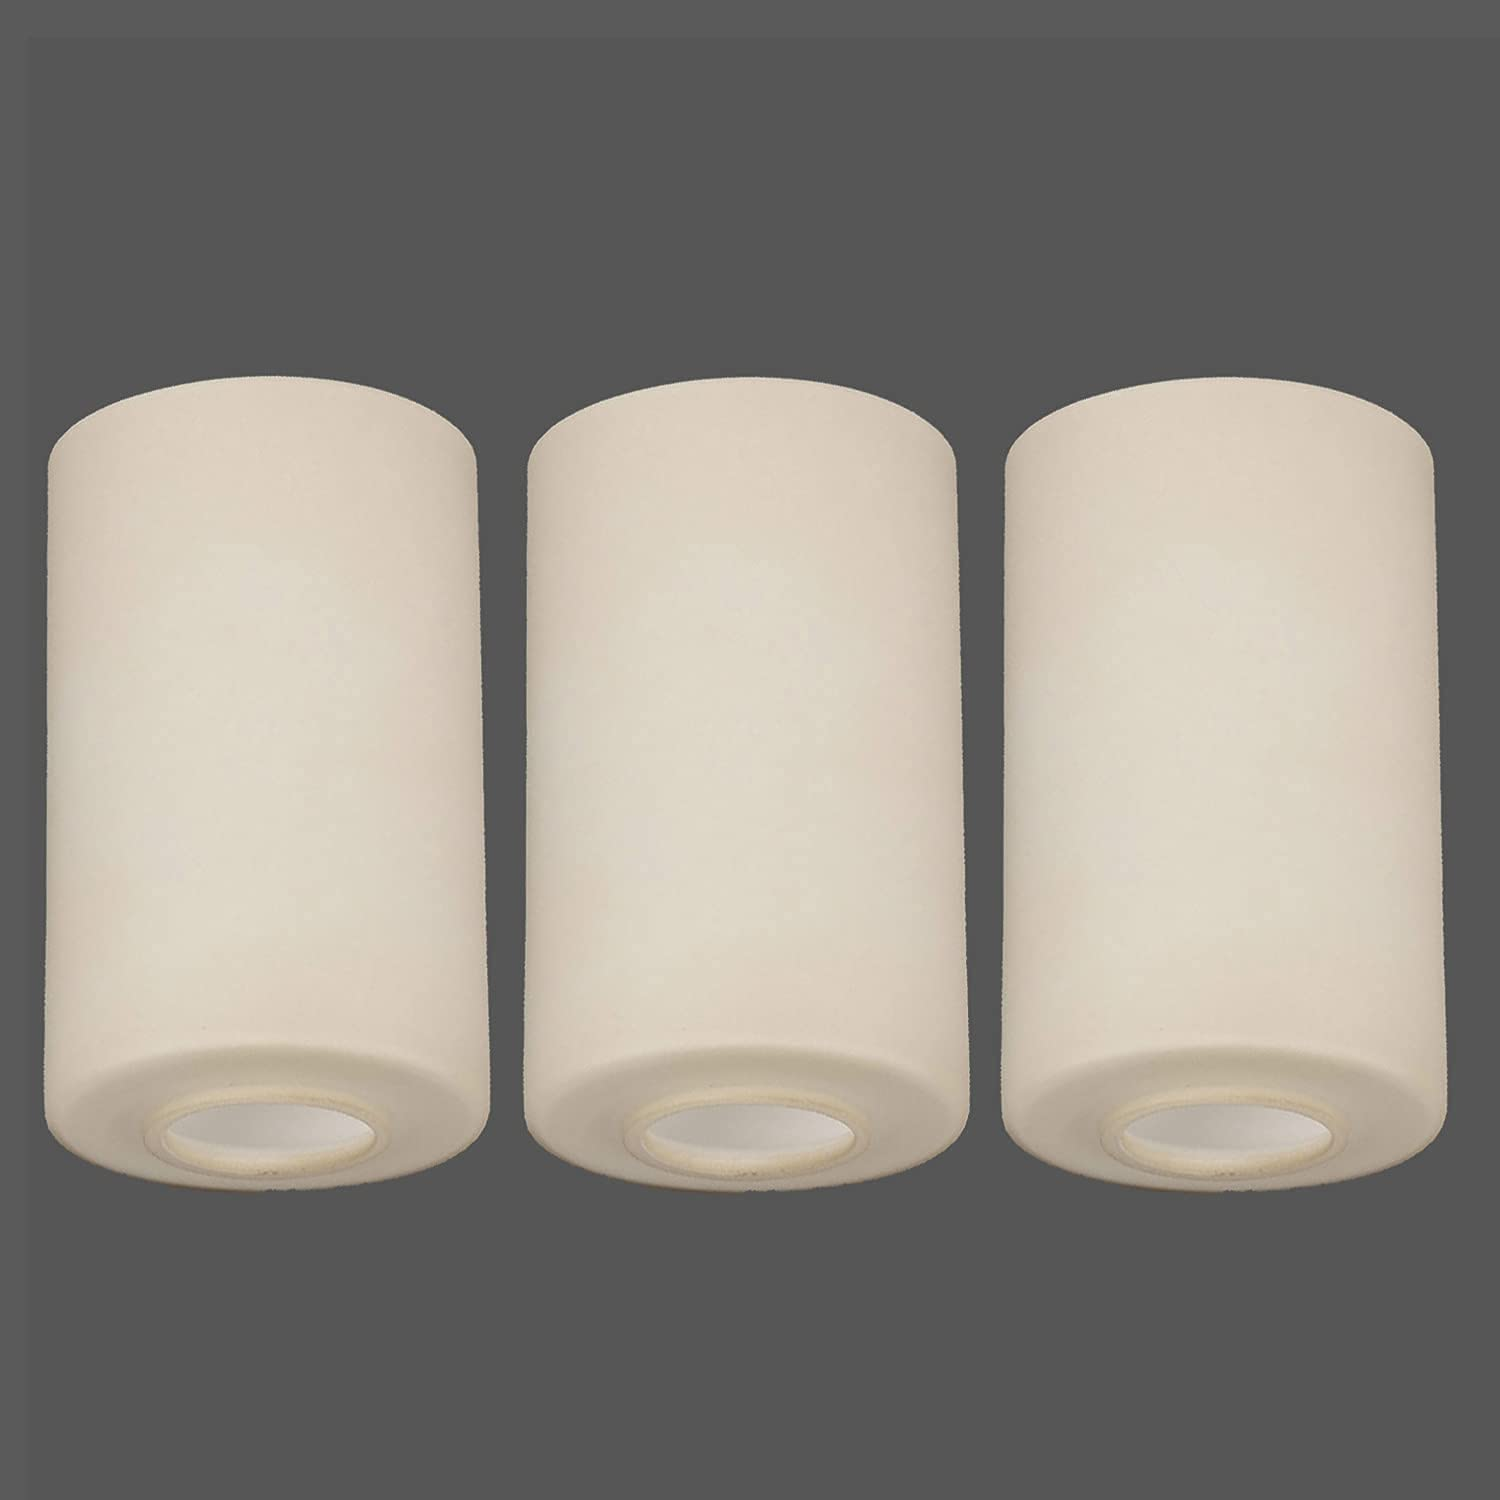 Anmire 3PCS Vintage Style Glass Shade with 1-5 Direct stock discount Replacement Popular 8-Inc